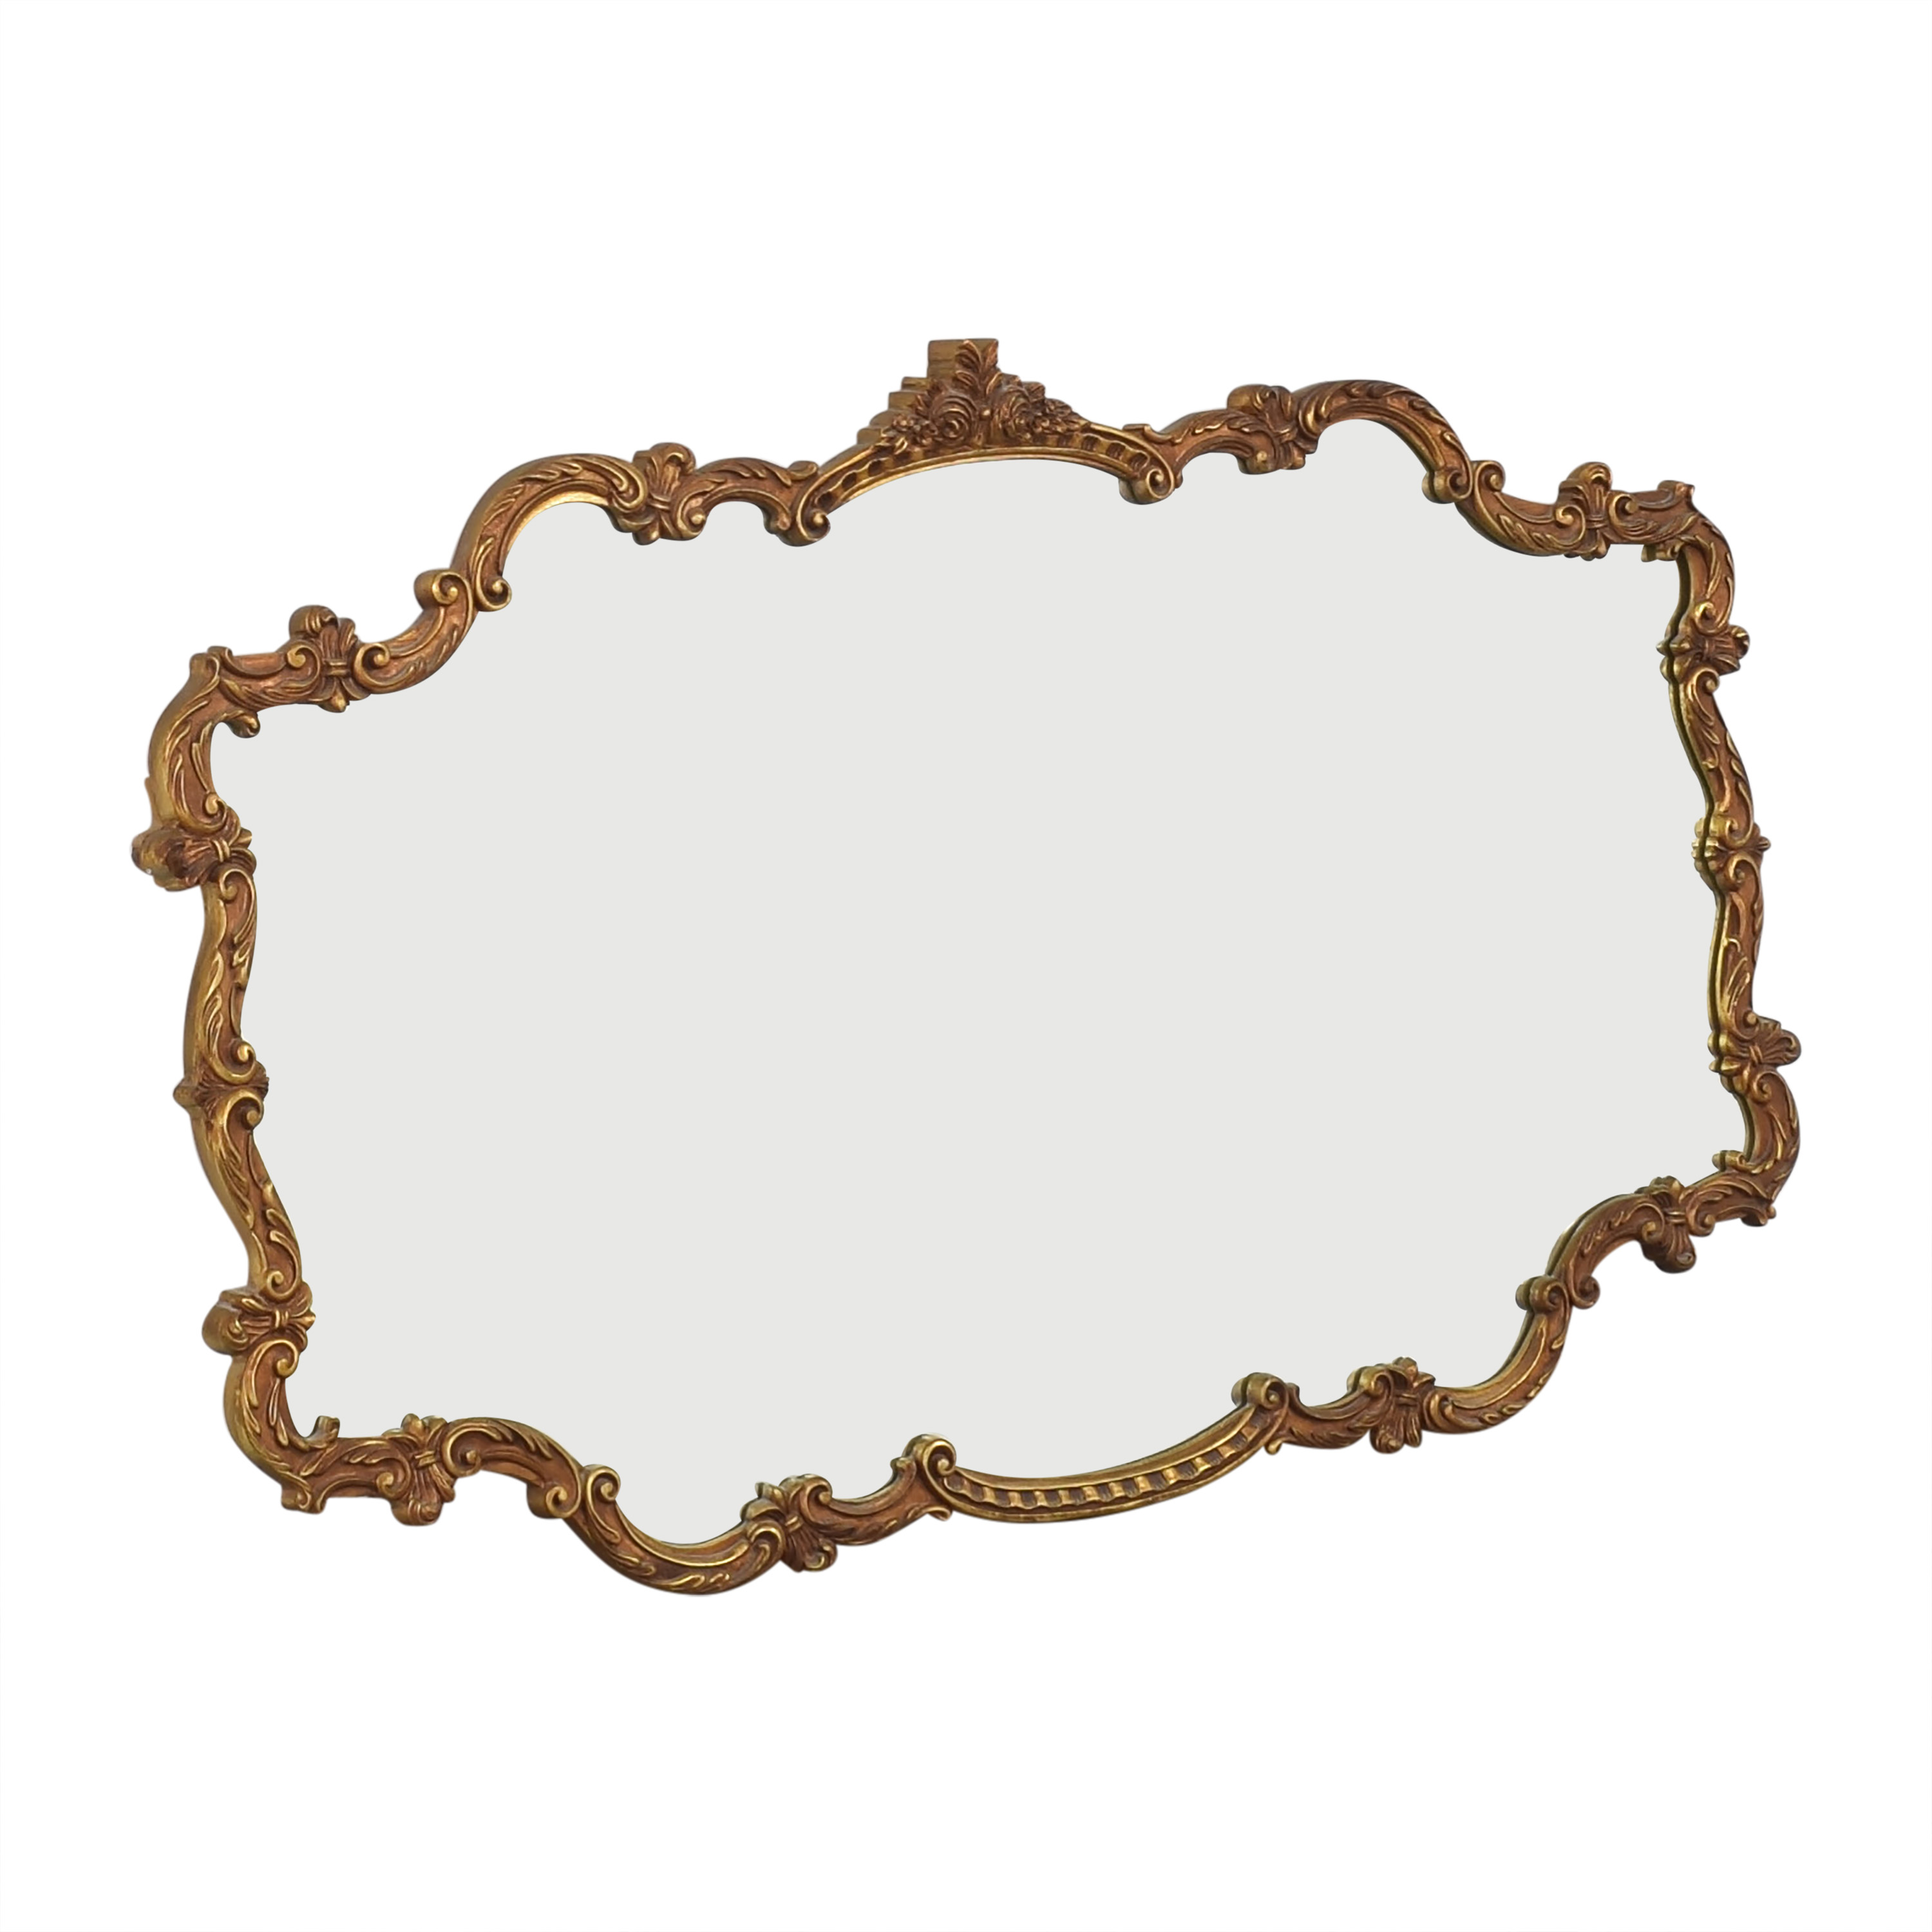 Ornate Framed Wall Mirror for sale